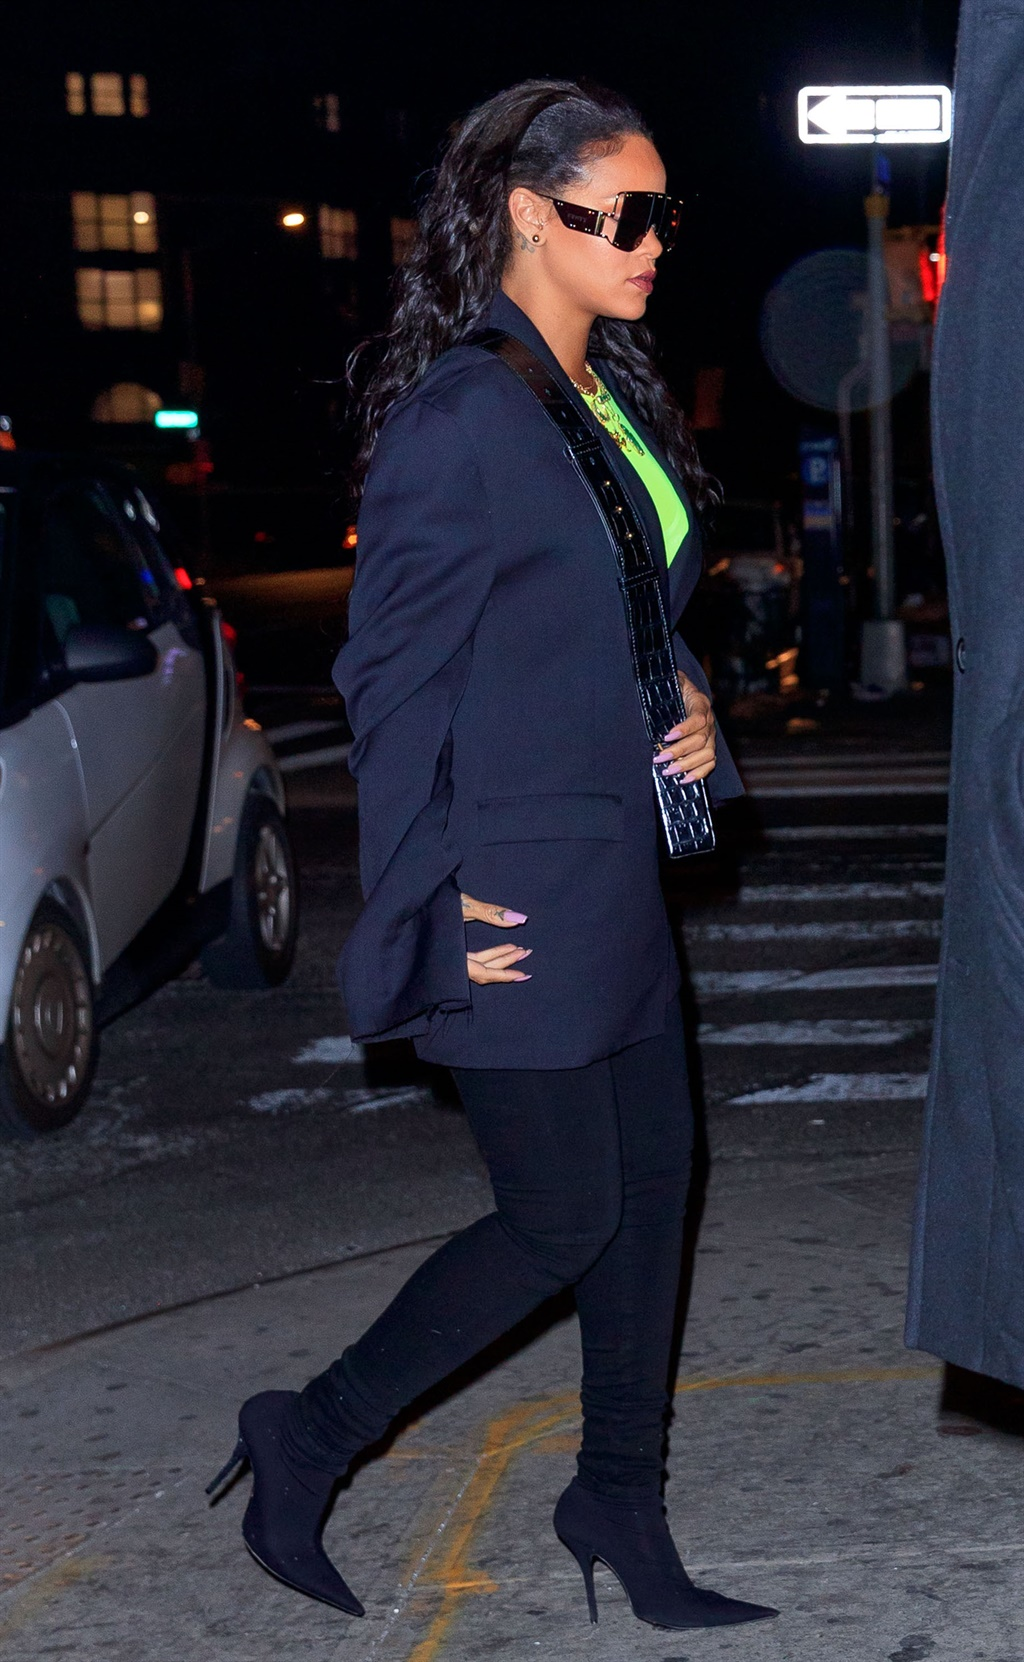 NEW YORK, NY - JANUARY 15: Rihanna out and about